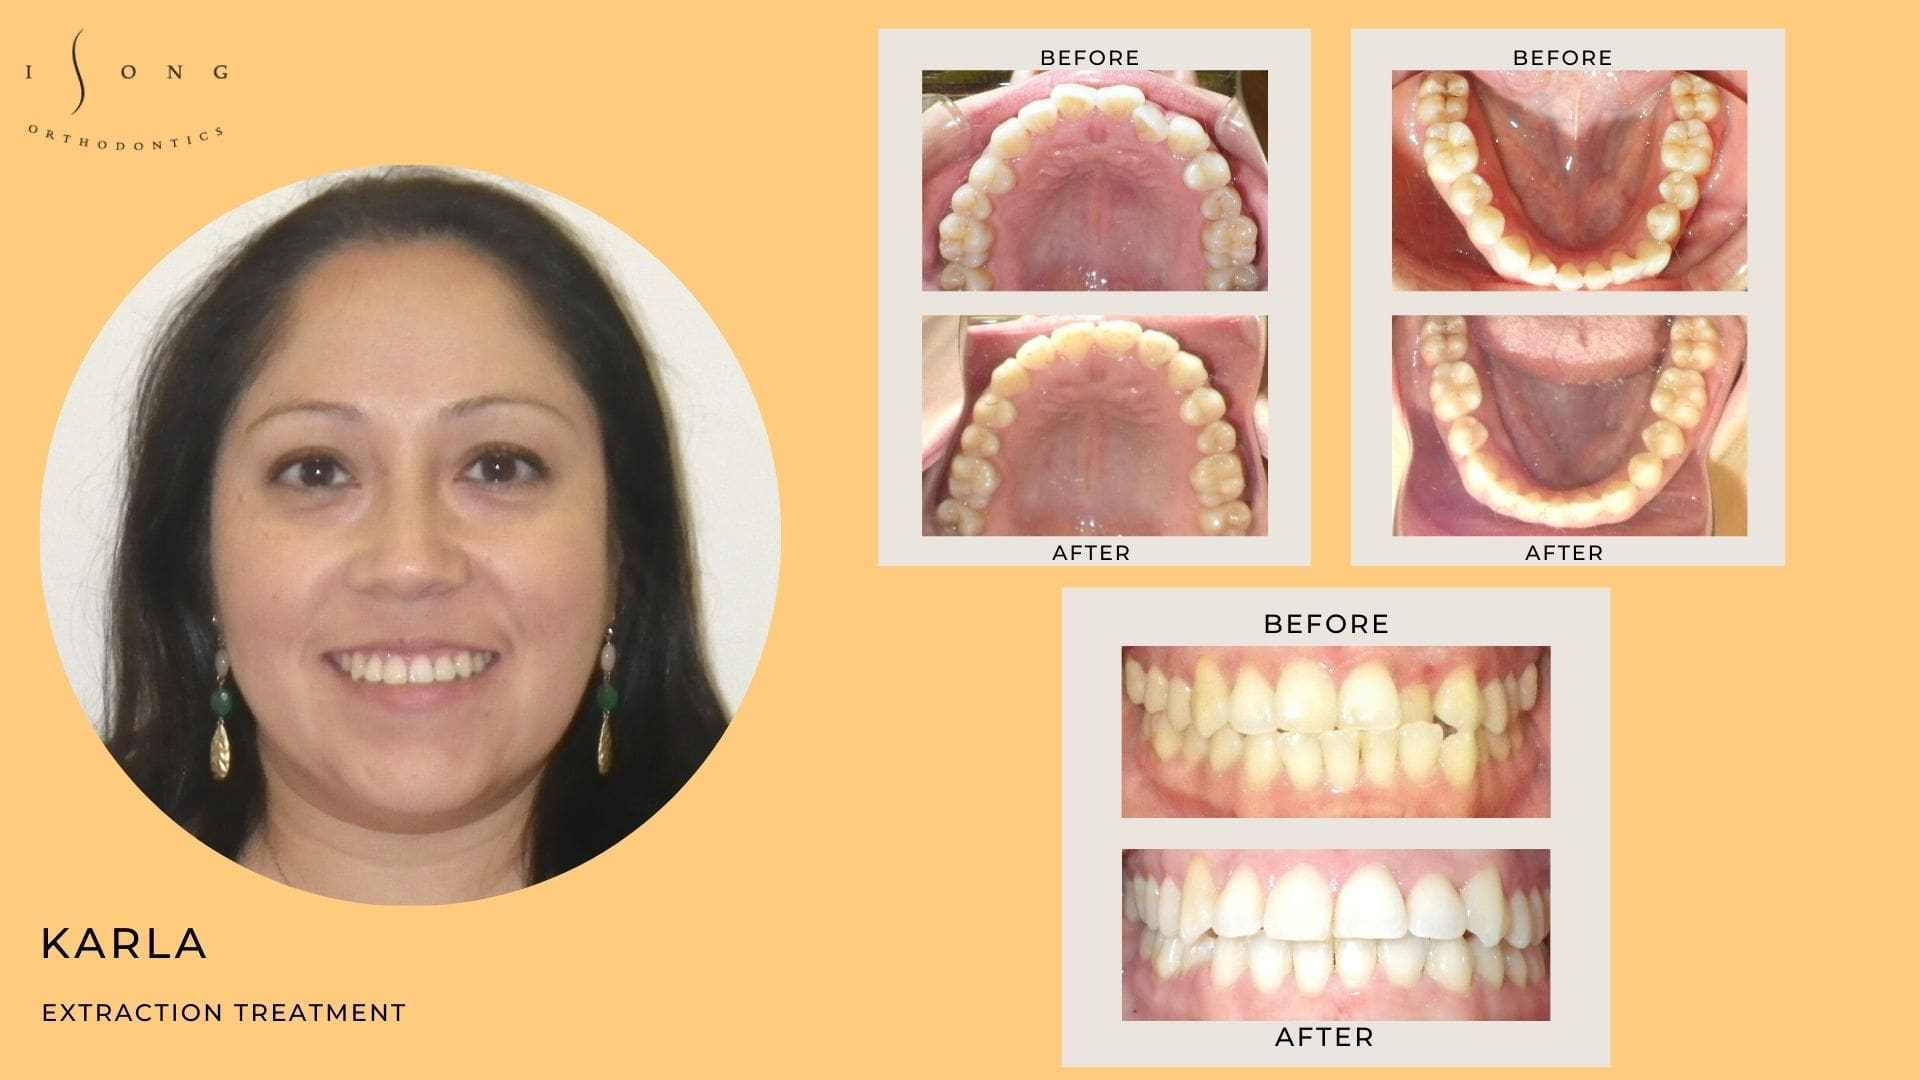 Karla - Before and After Braces